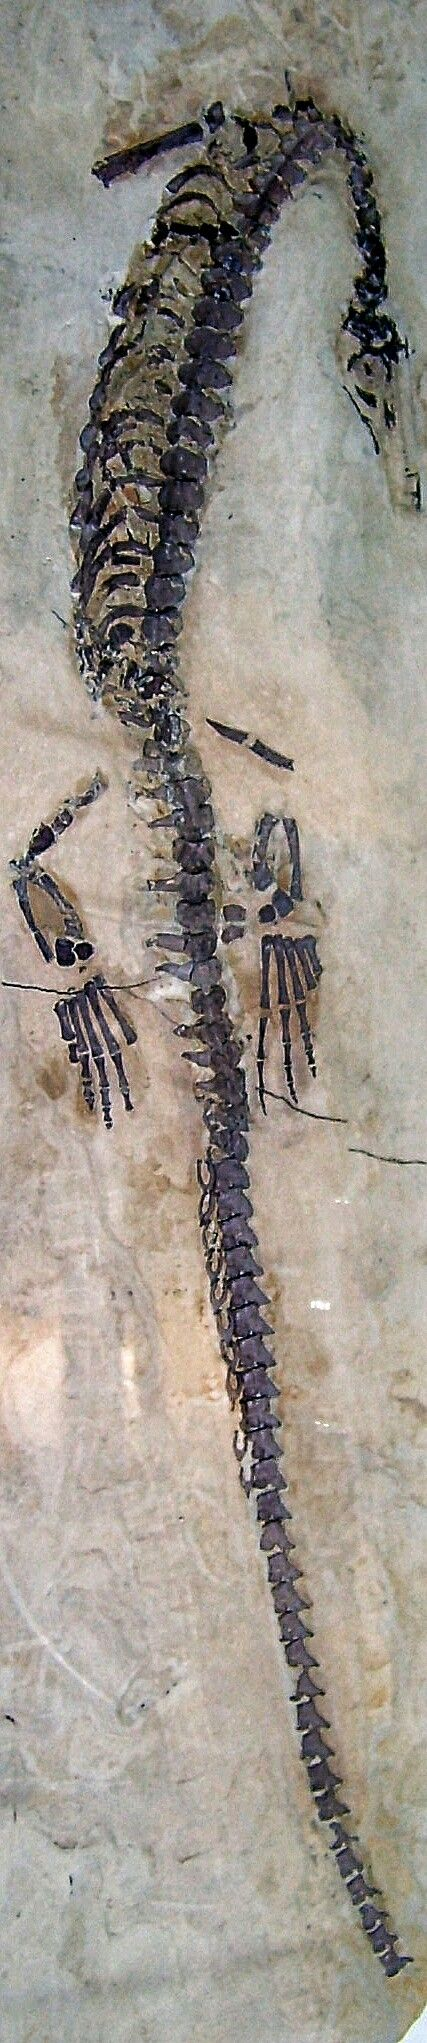 Brazilosaurusis anextinctgenusofmesosaurwhich lived during the earlyPermian(Artinskianstage) of what is nowBrazil. It is known from askeletonrecovered from the Assistencia Member of theIrati Formation(Hanayama Farm,Tatuí,São Paulo). It was named by T. Shikama and H. Ozaki in1966and thetype speciesisBrazilosaurus sanpauloensis